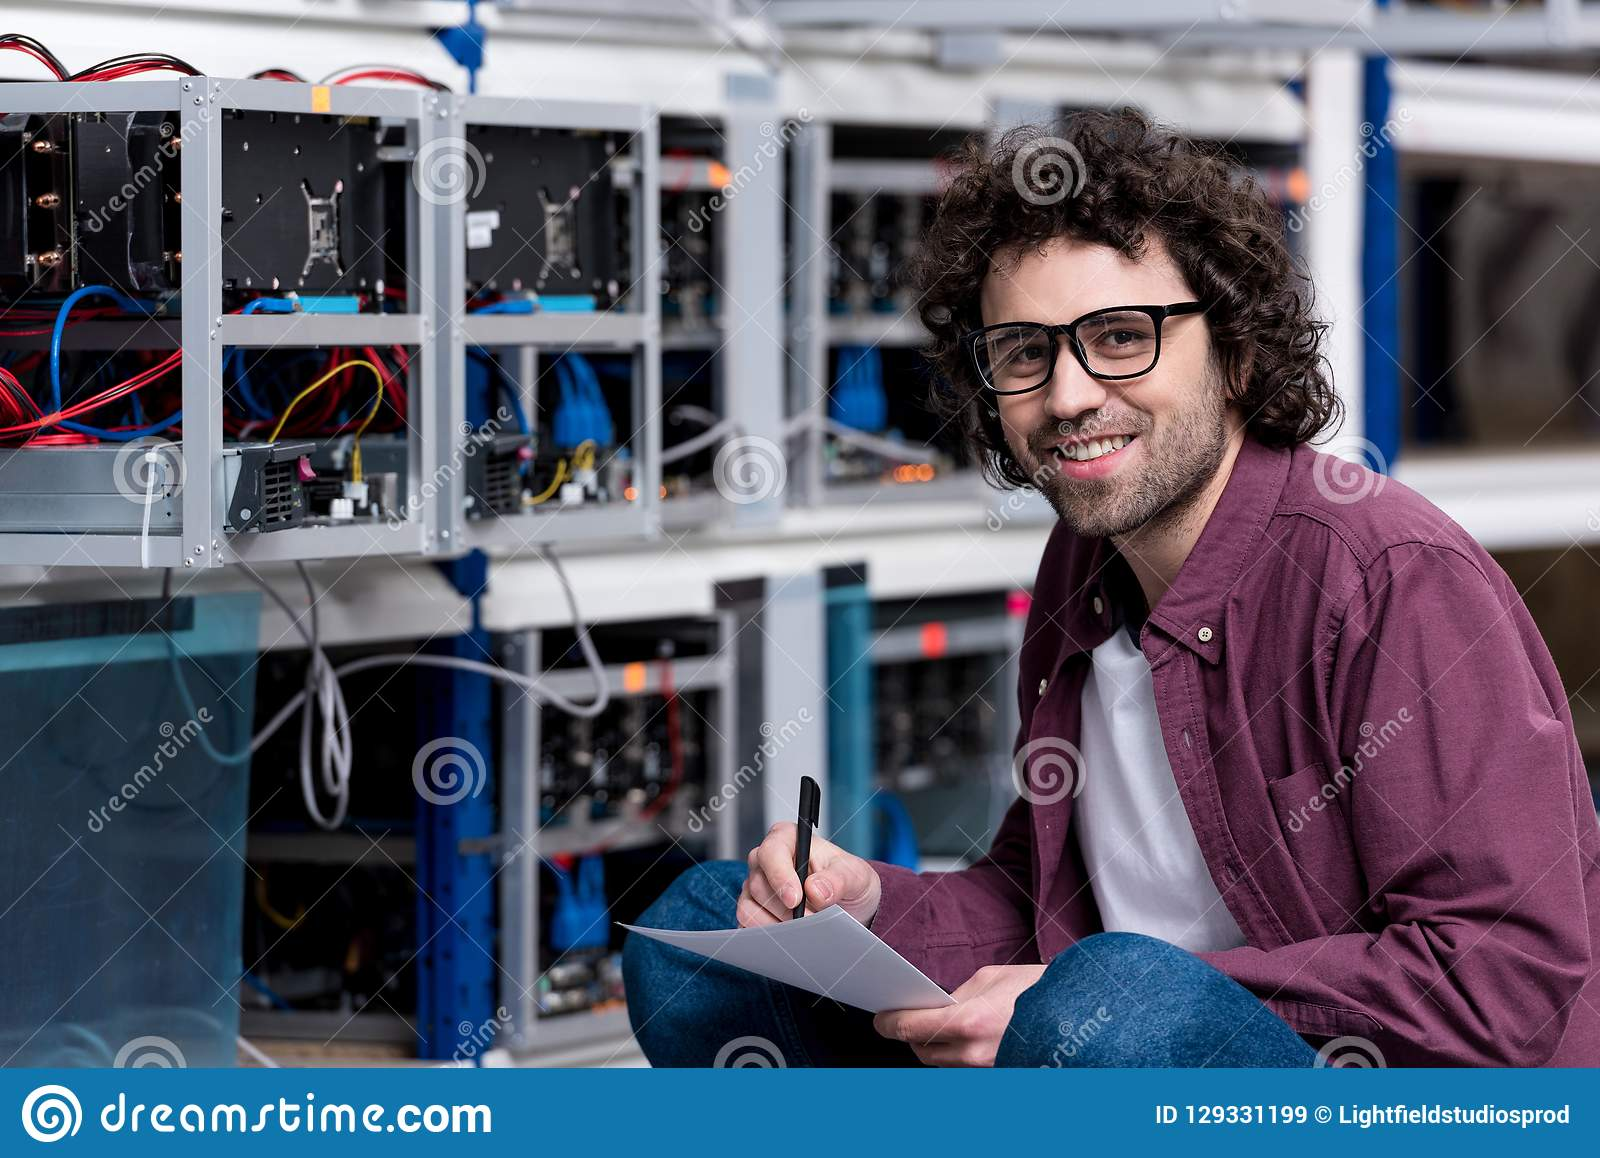 Young smiling computer engineer sitting on floor and writing at cryptocurrency mining farm royalty free stock images